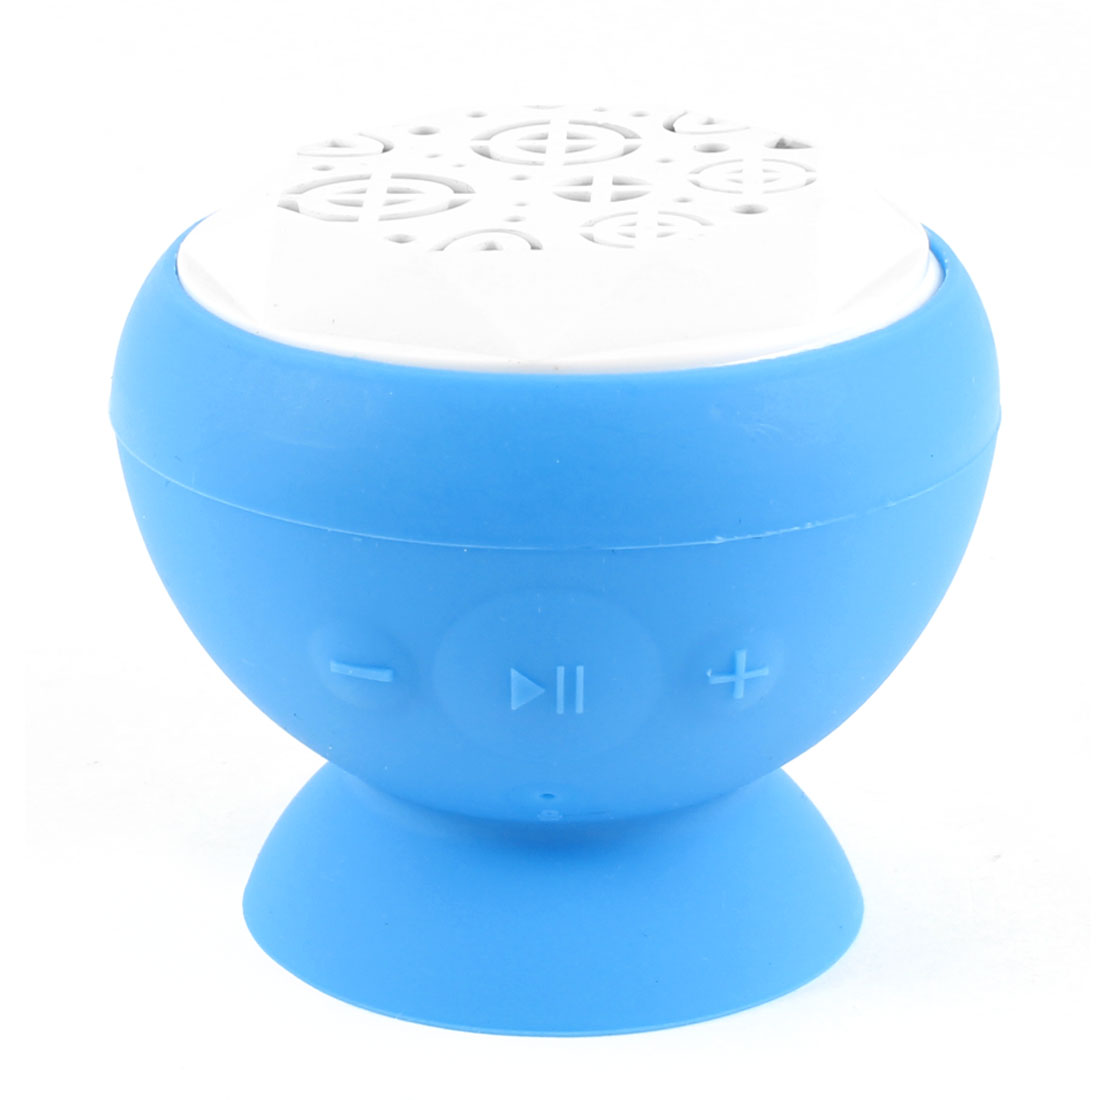 Blue Silicone Suction Cup Phone Stand Handsfree Mini bluetooth Speaker for PC